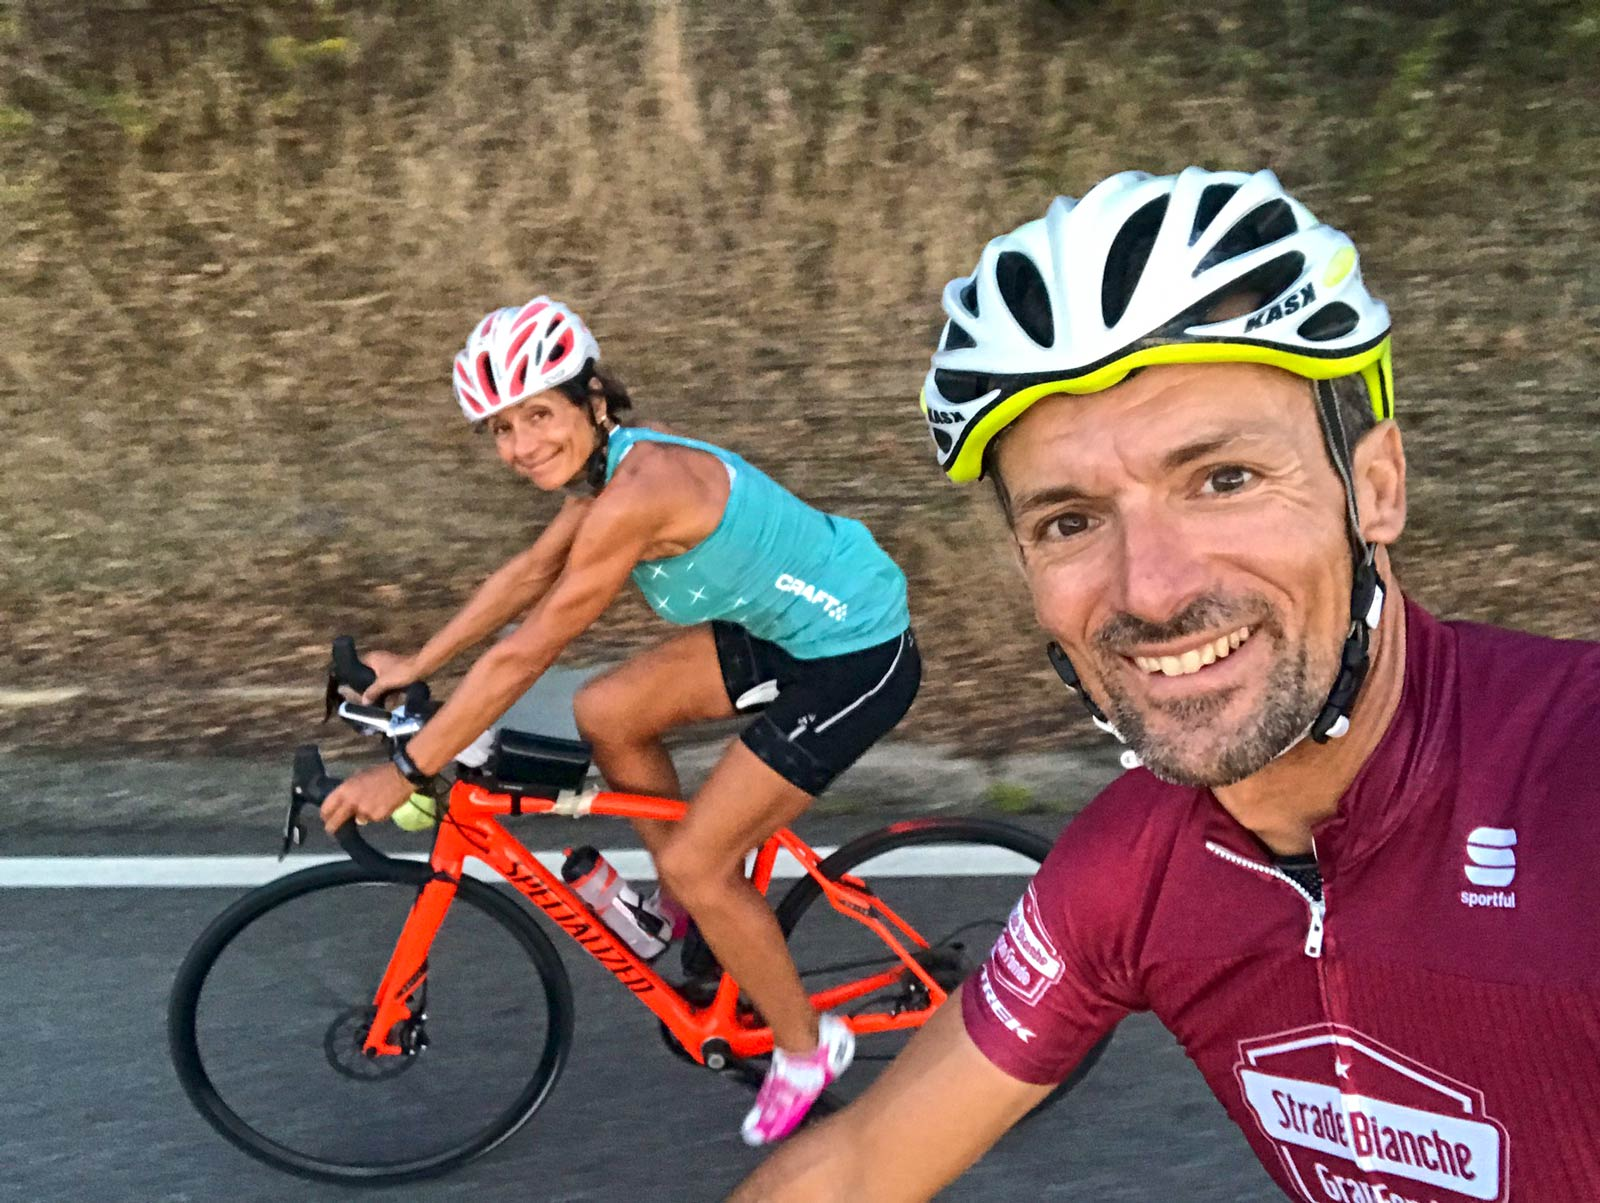 With-Elena-and-Piero-fall-in-love-with-Tuscany-by-bike